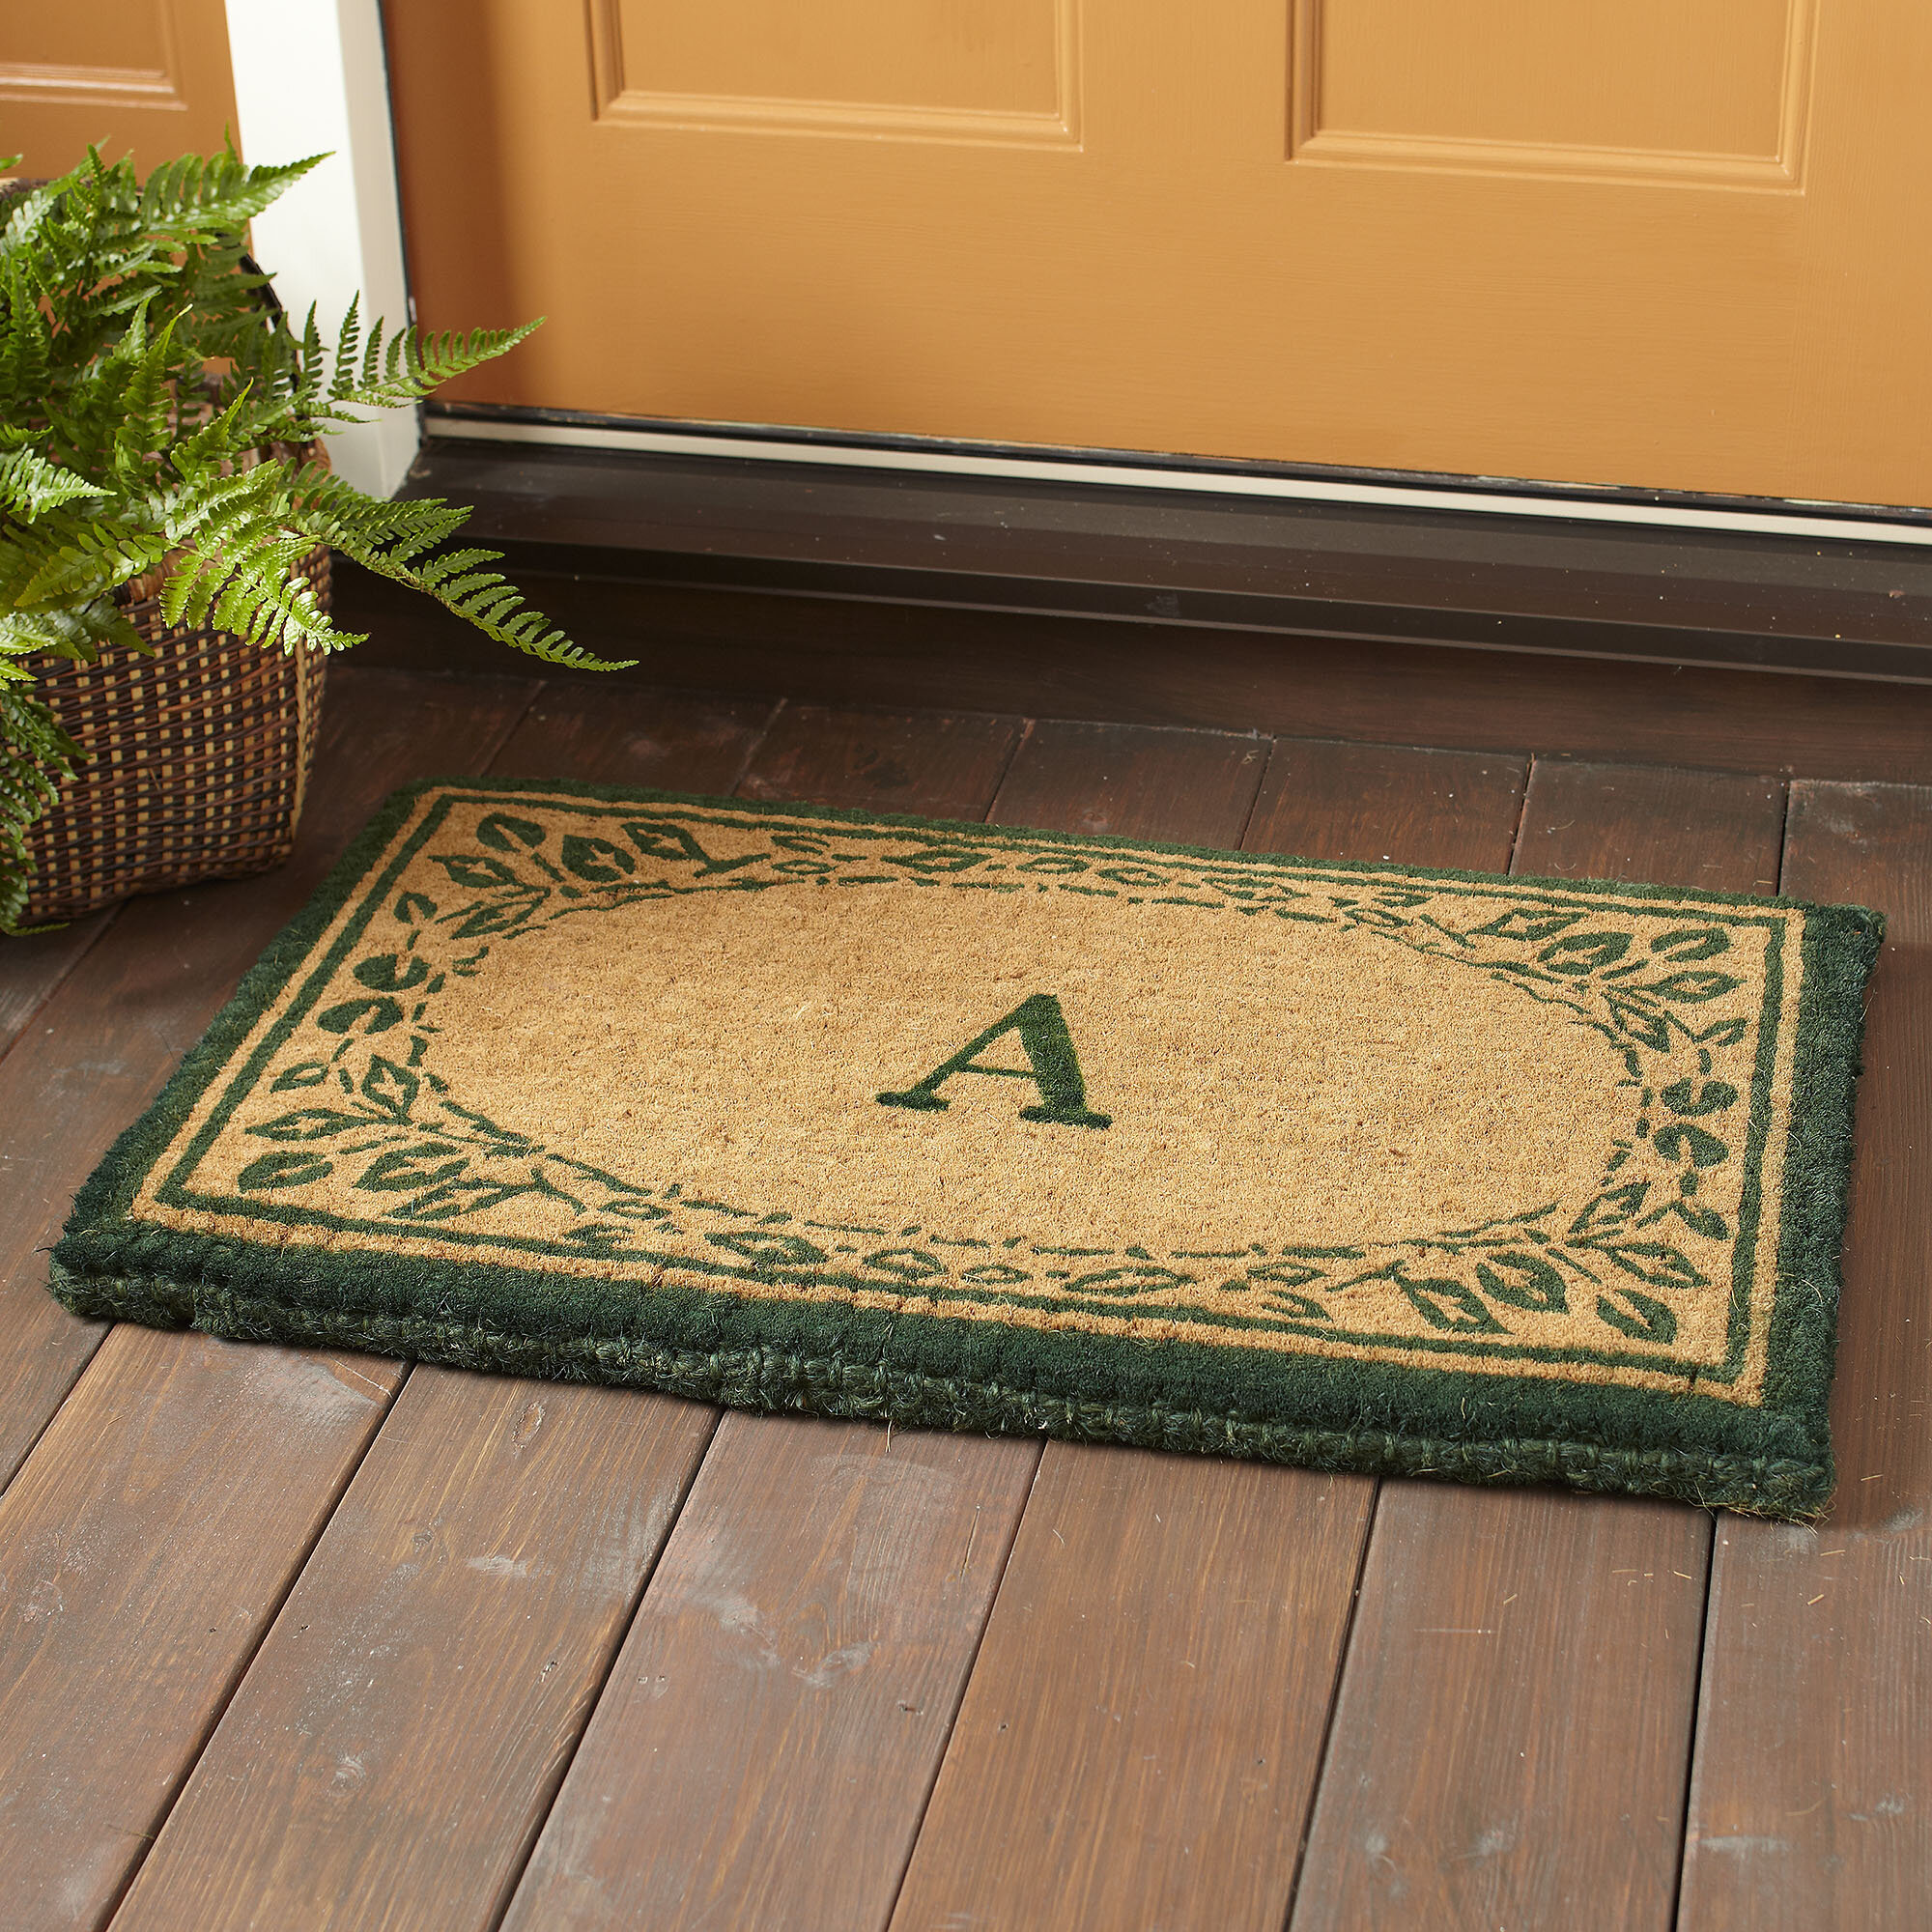 palace mat welcome pet paws your the wipe pampered product